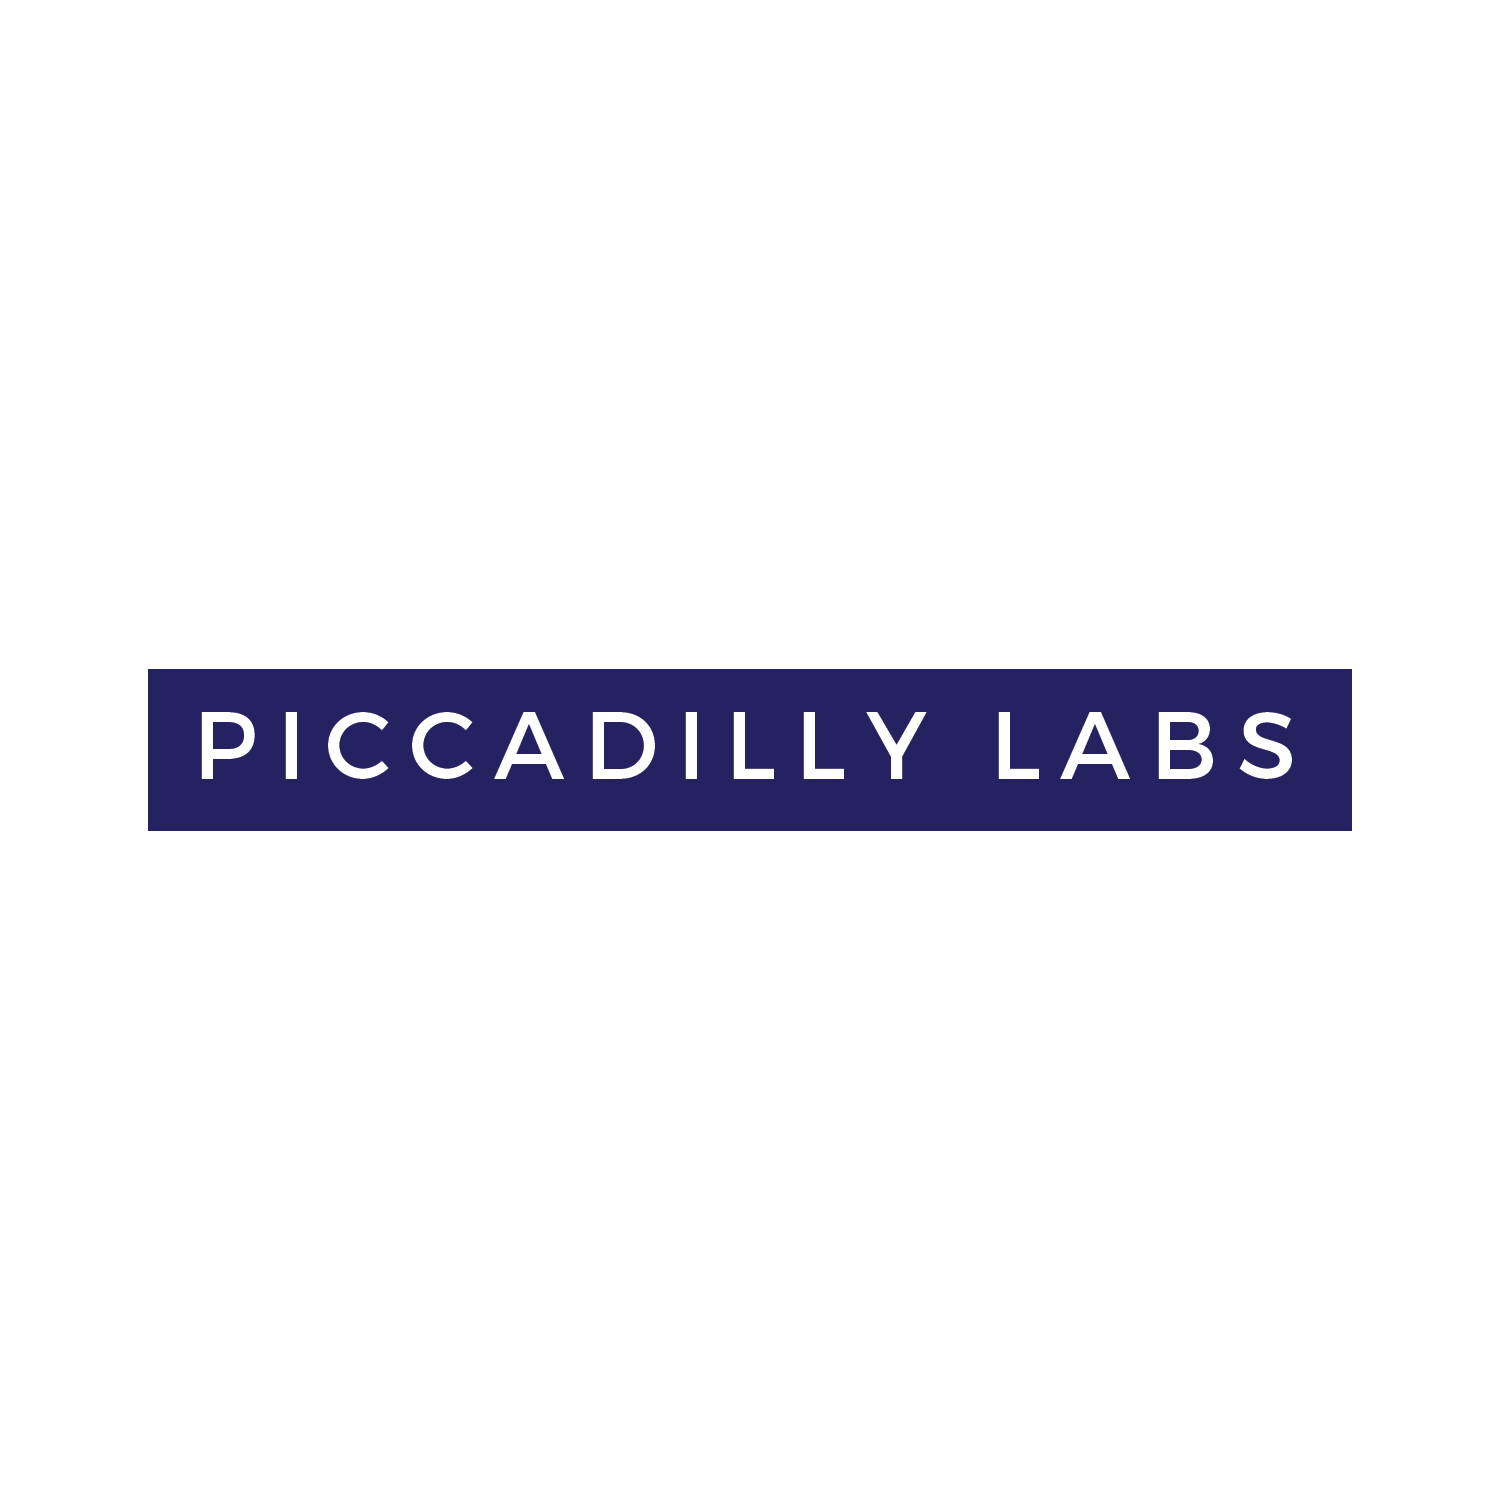 Piccadilly Labs logo